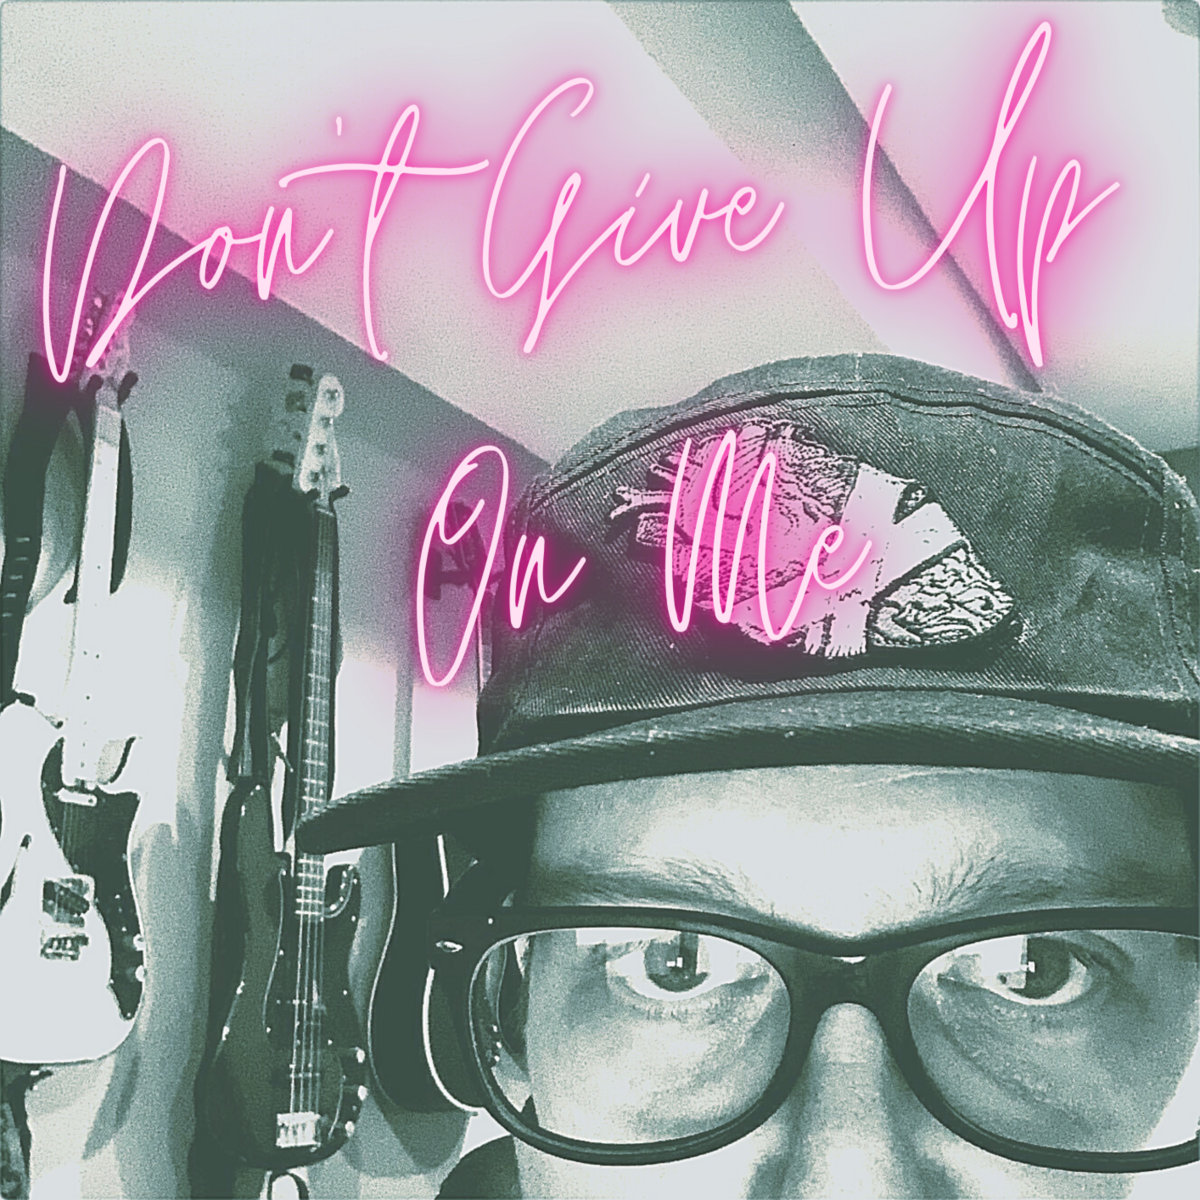 Don't Give Up on Me by The Mike Jones Band